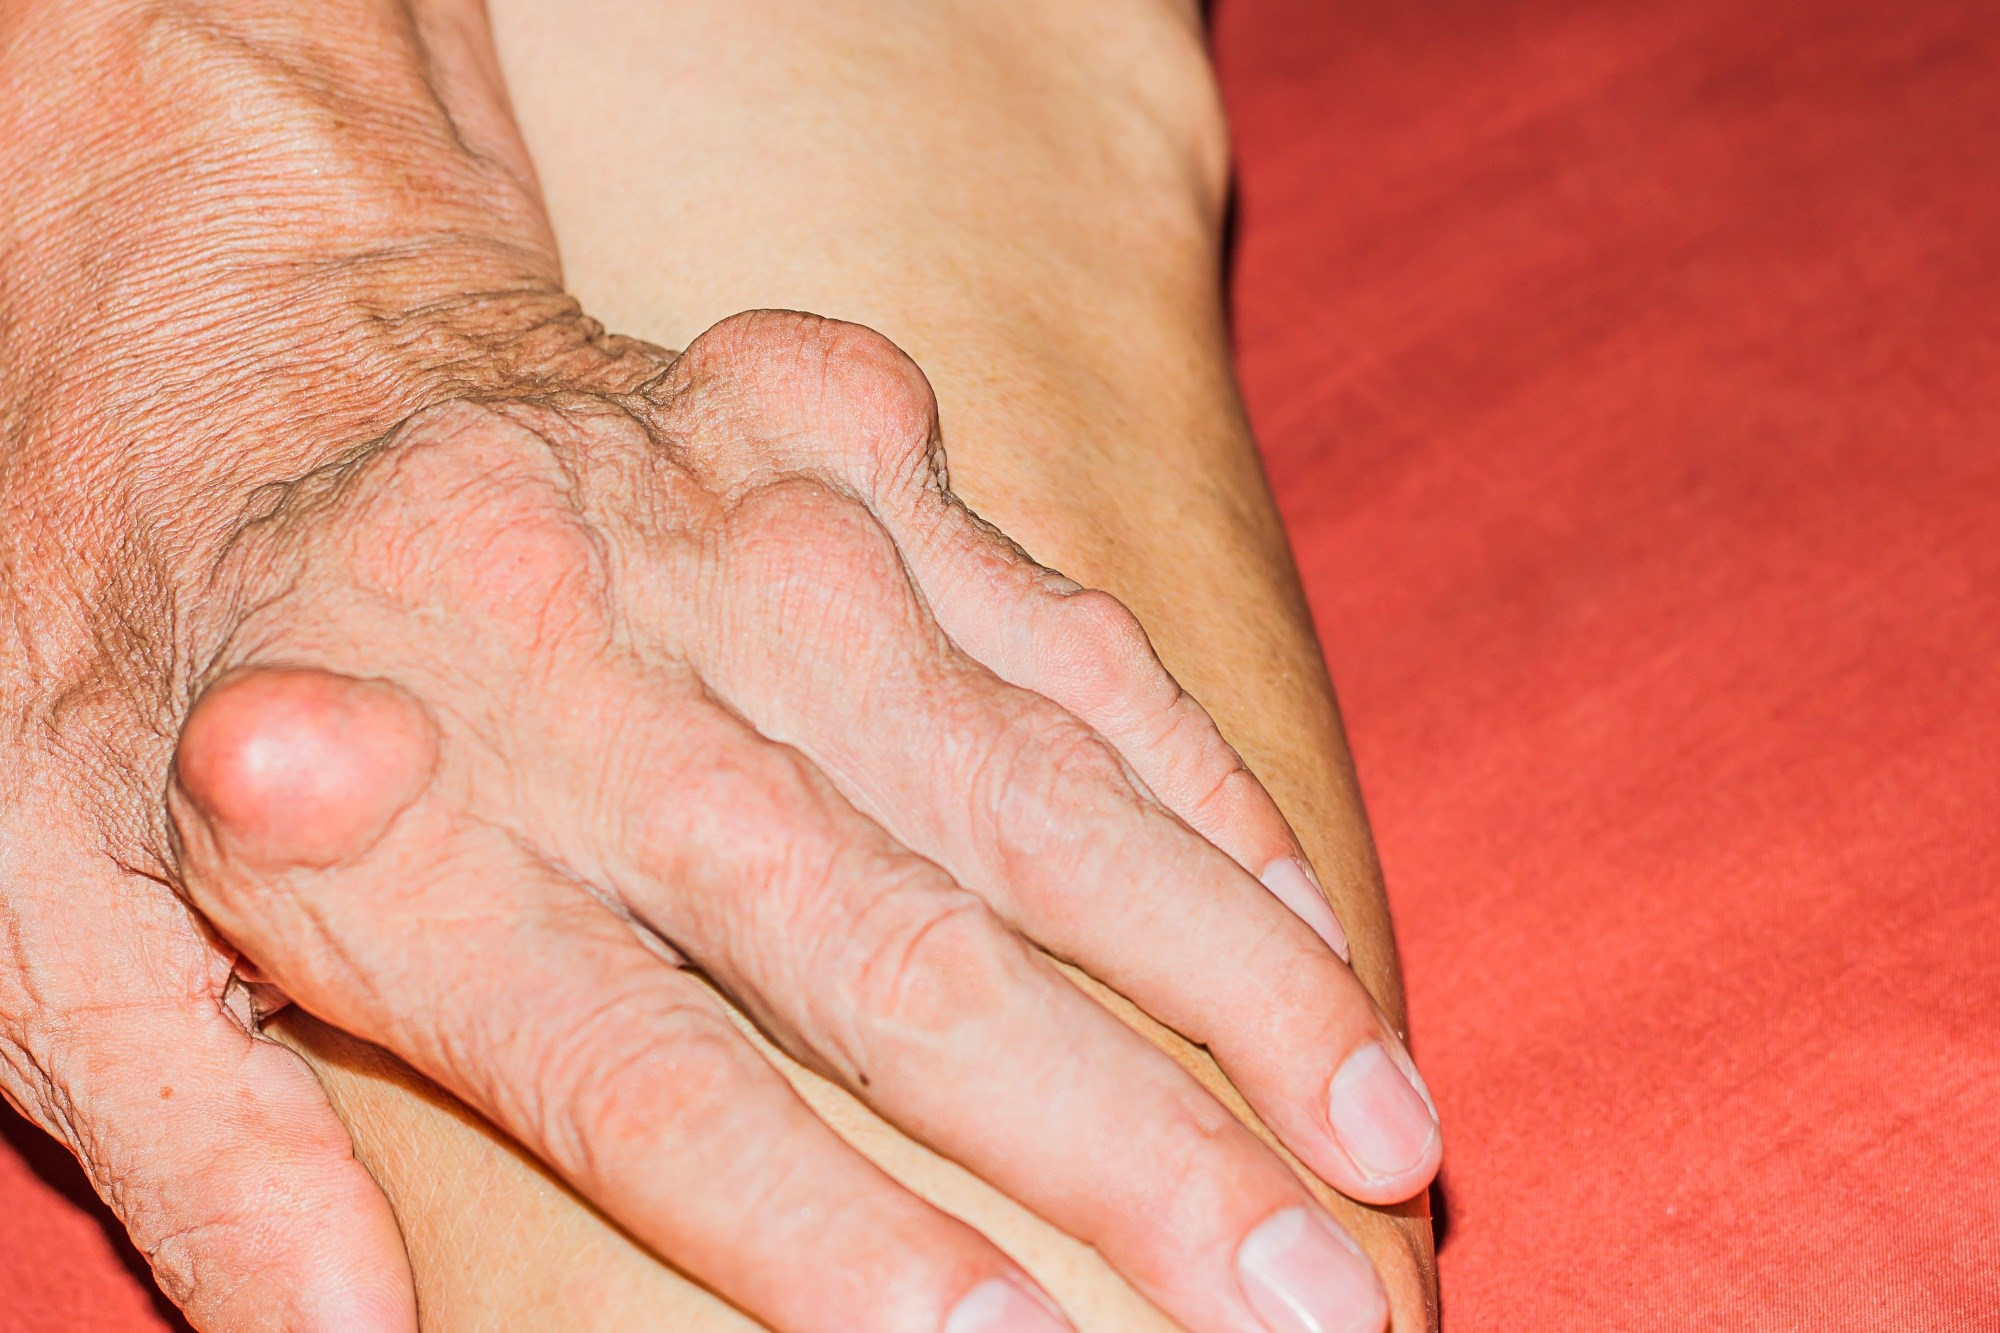 Data suggest that anakinra can be an effective treatment option for acute gout flares.